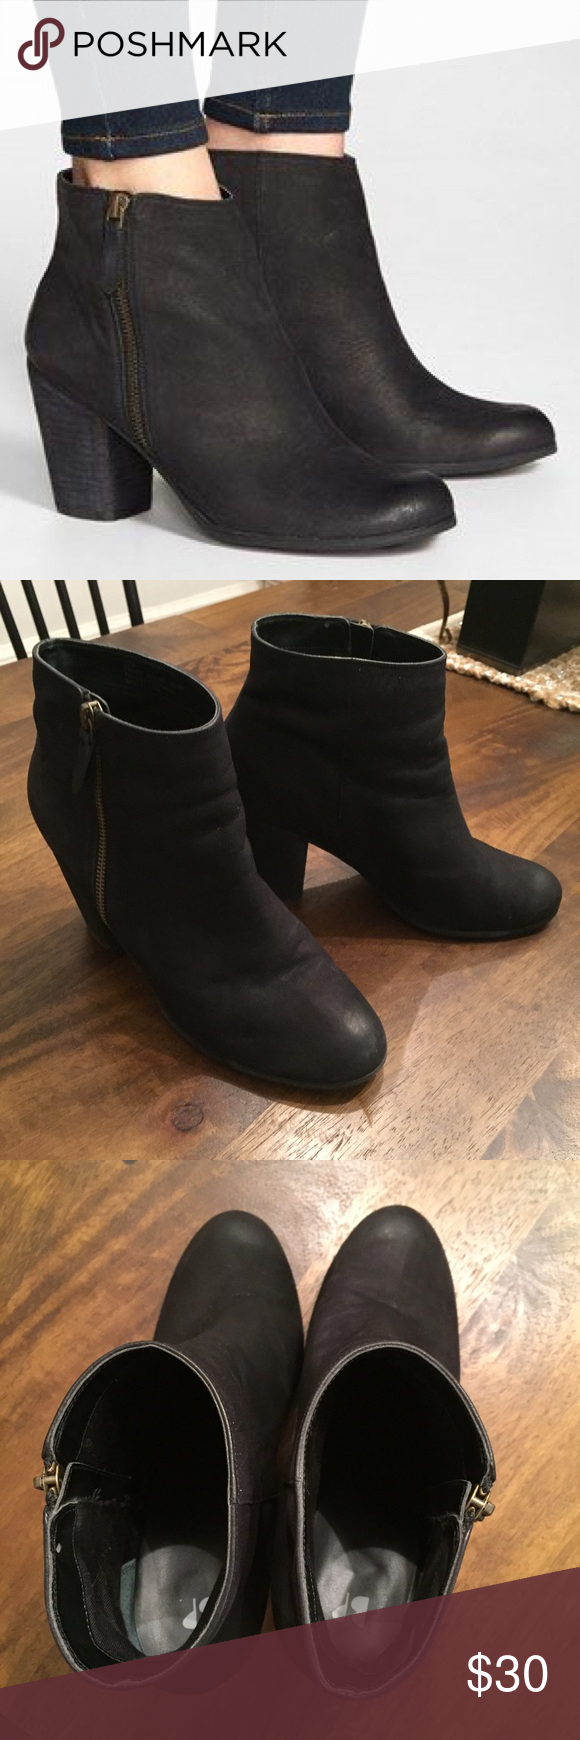 Nordstrom Trolley Bootie in Black Literally the best bootie! These have some wear, but really good used condition. Only small blemishes are on heel and pictured. Nordstrom Shoes Ankle Boots & Booties